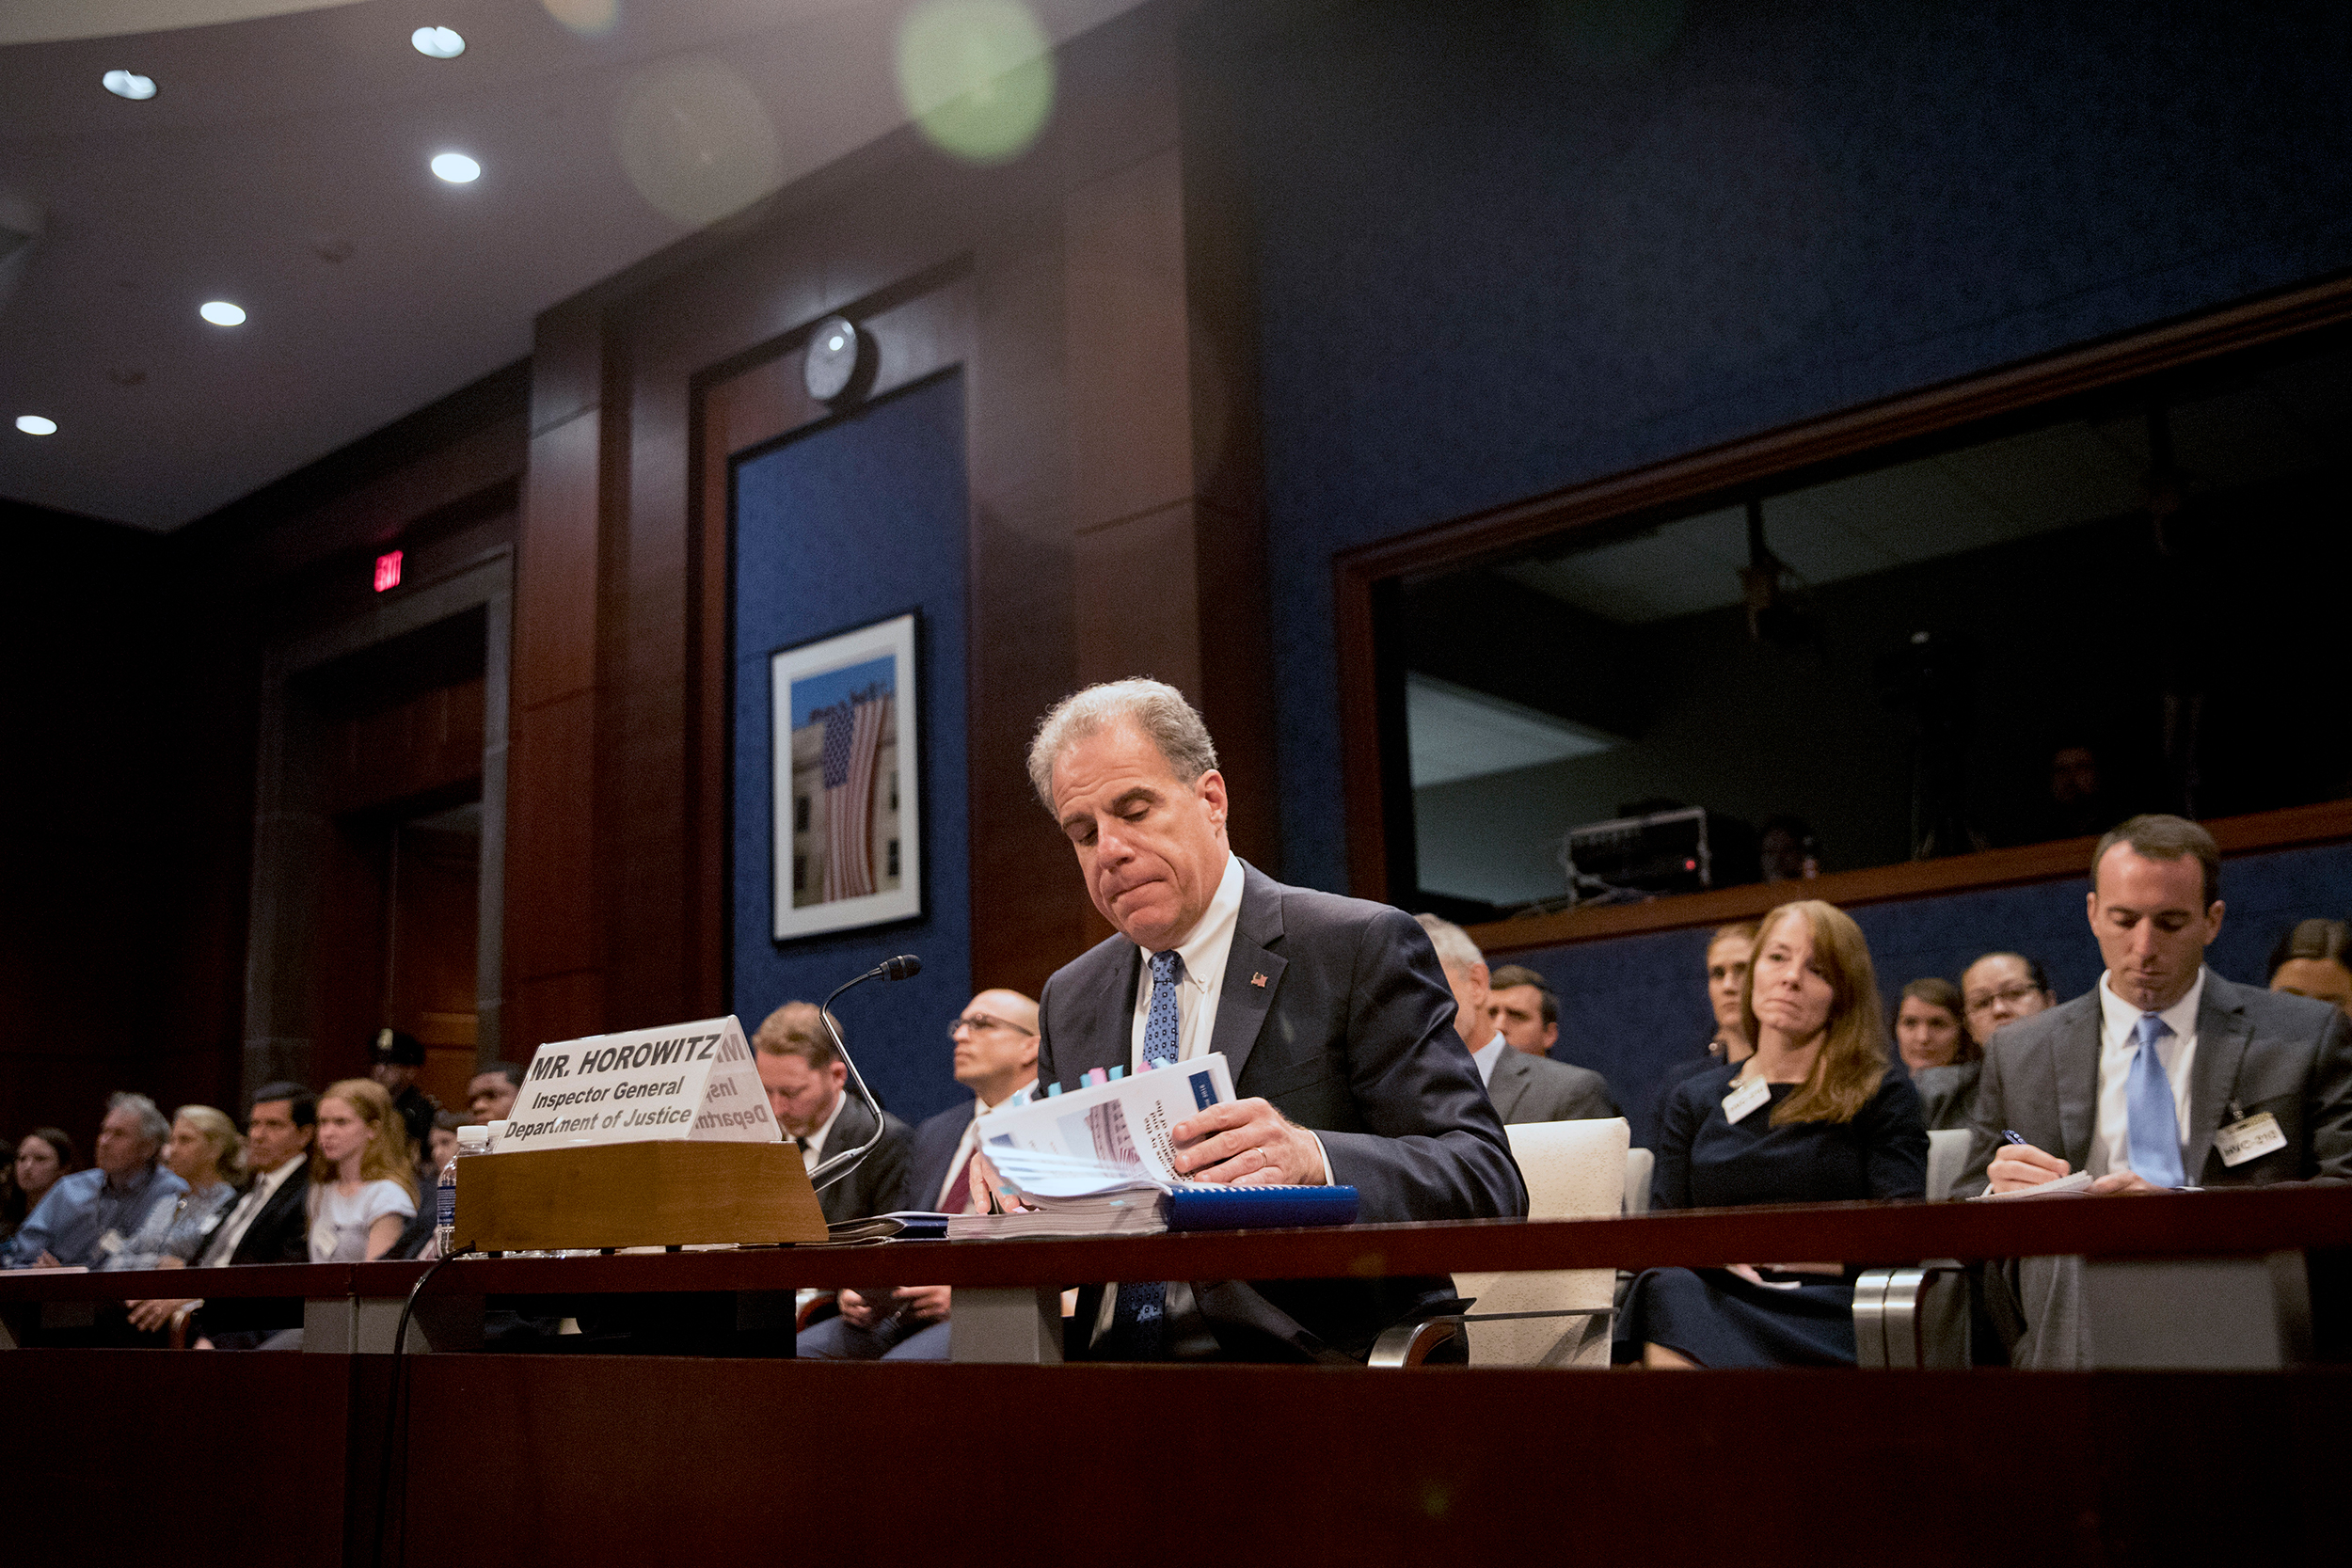 Senators to grill Justice Department watchdog as fight continues over Russia probe